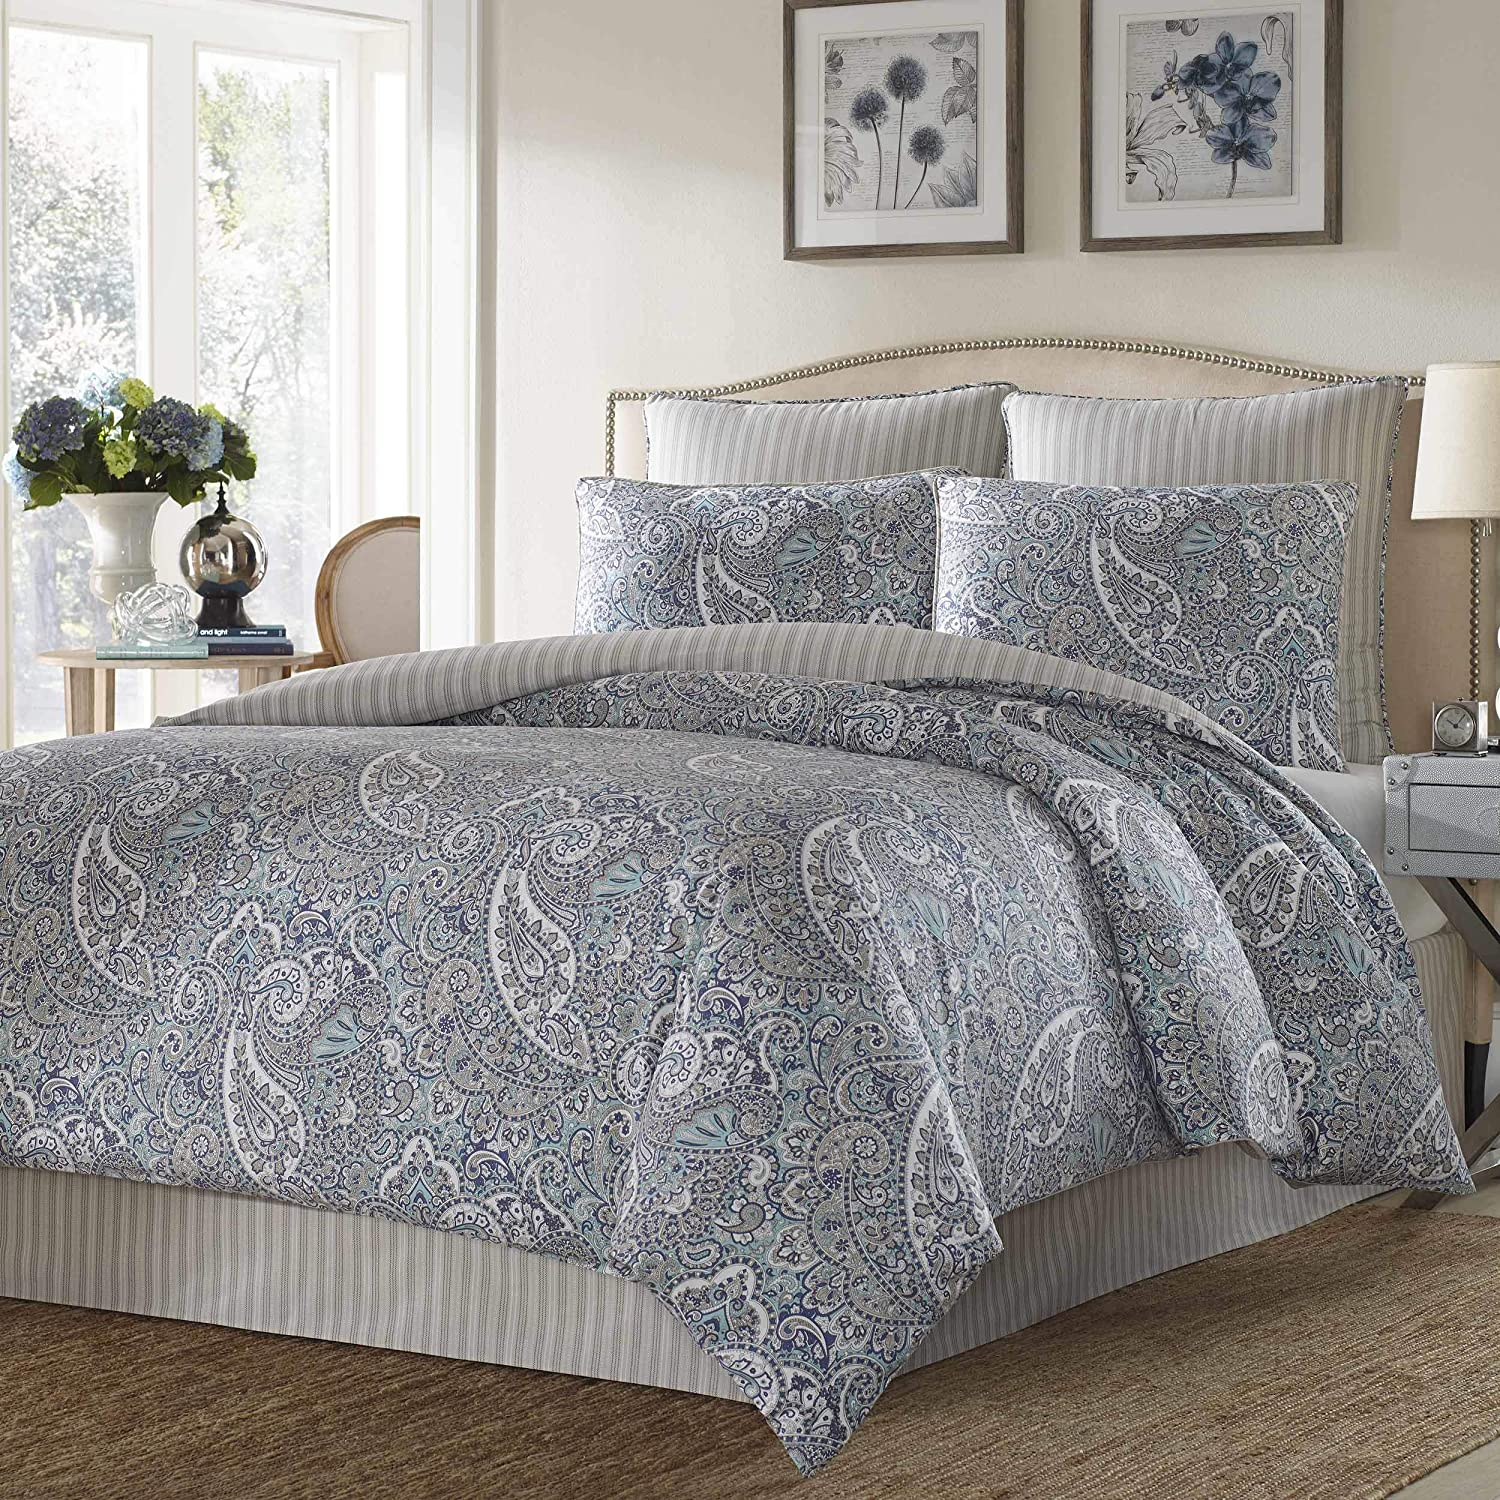 Stone Cottage Cotton Sateen Duvet Cover Set, Full/Queen, Lancaster